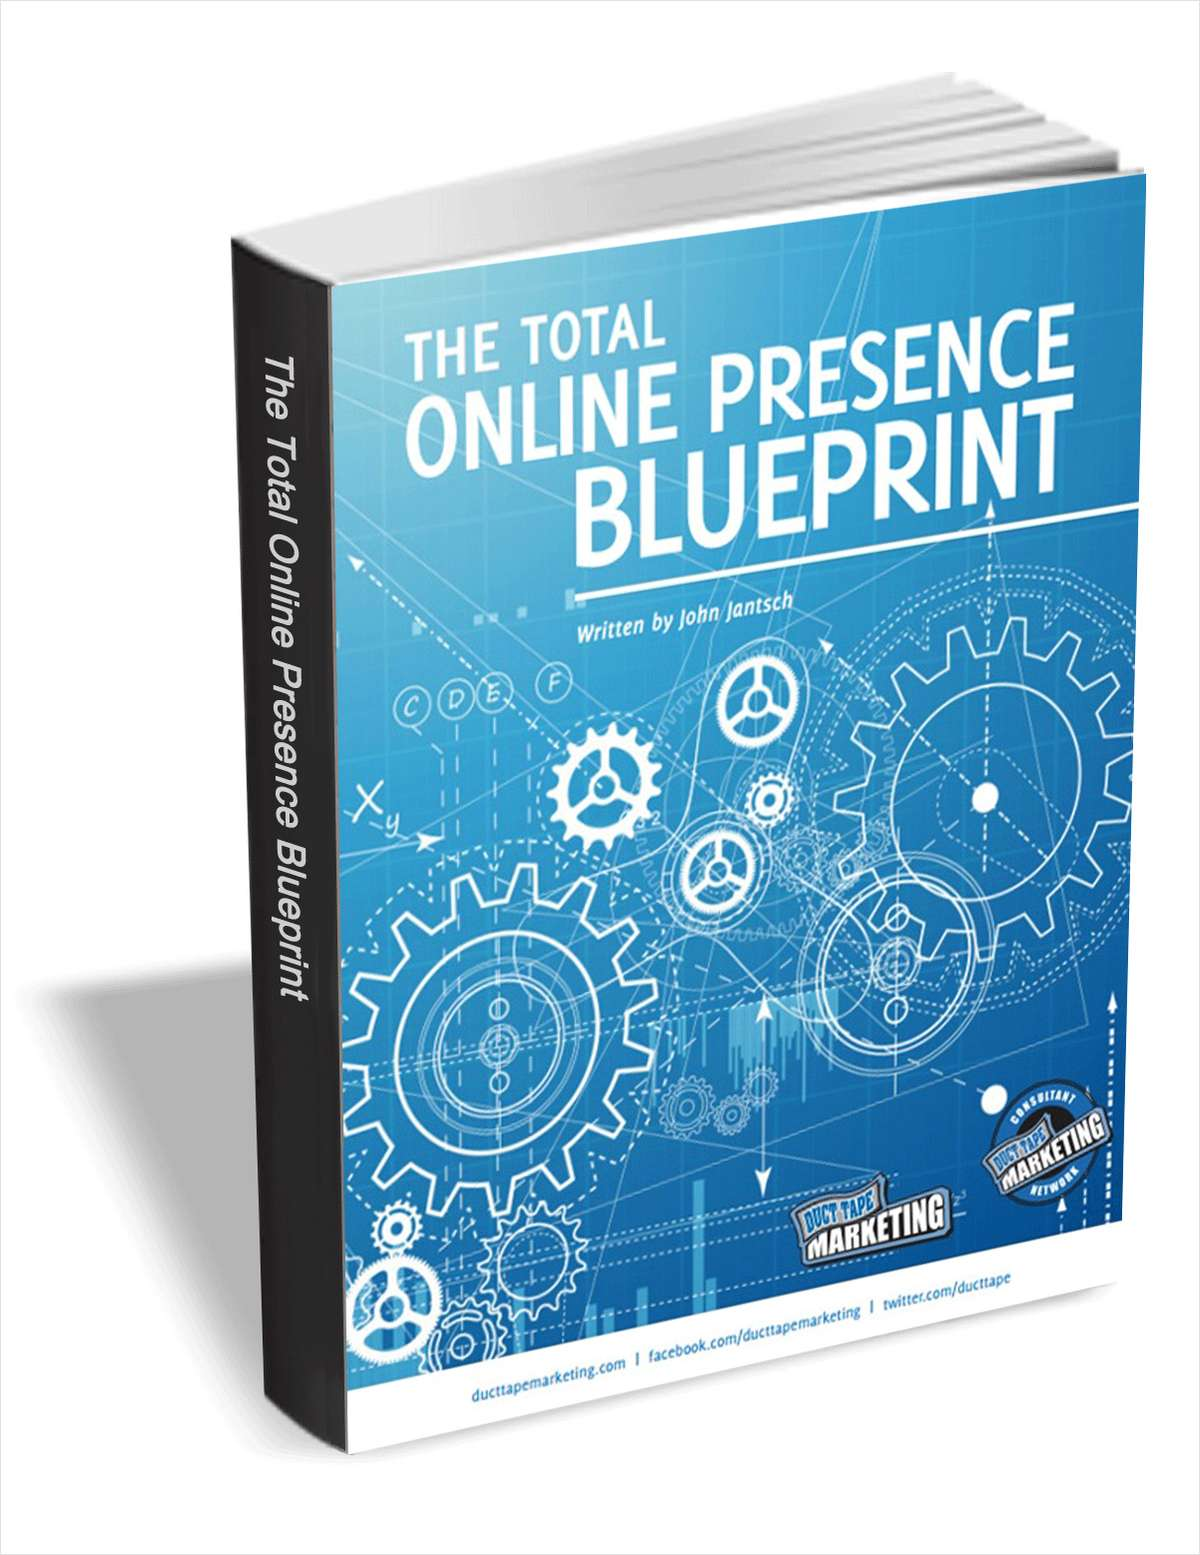 The Total Online Presence Blueprint